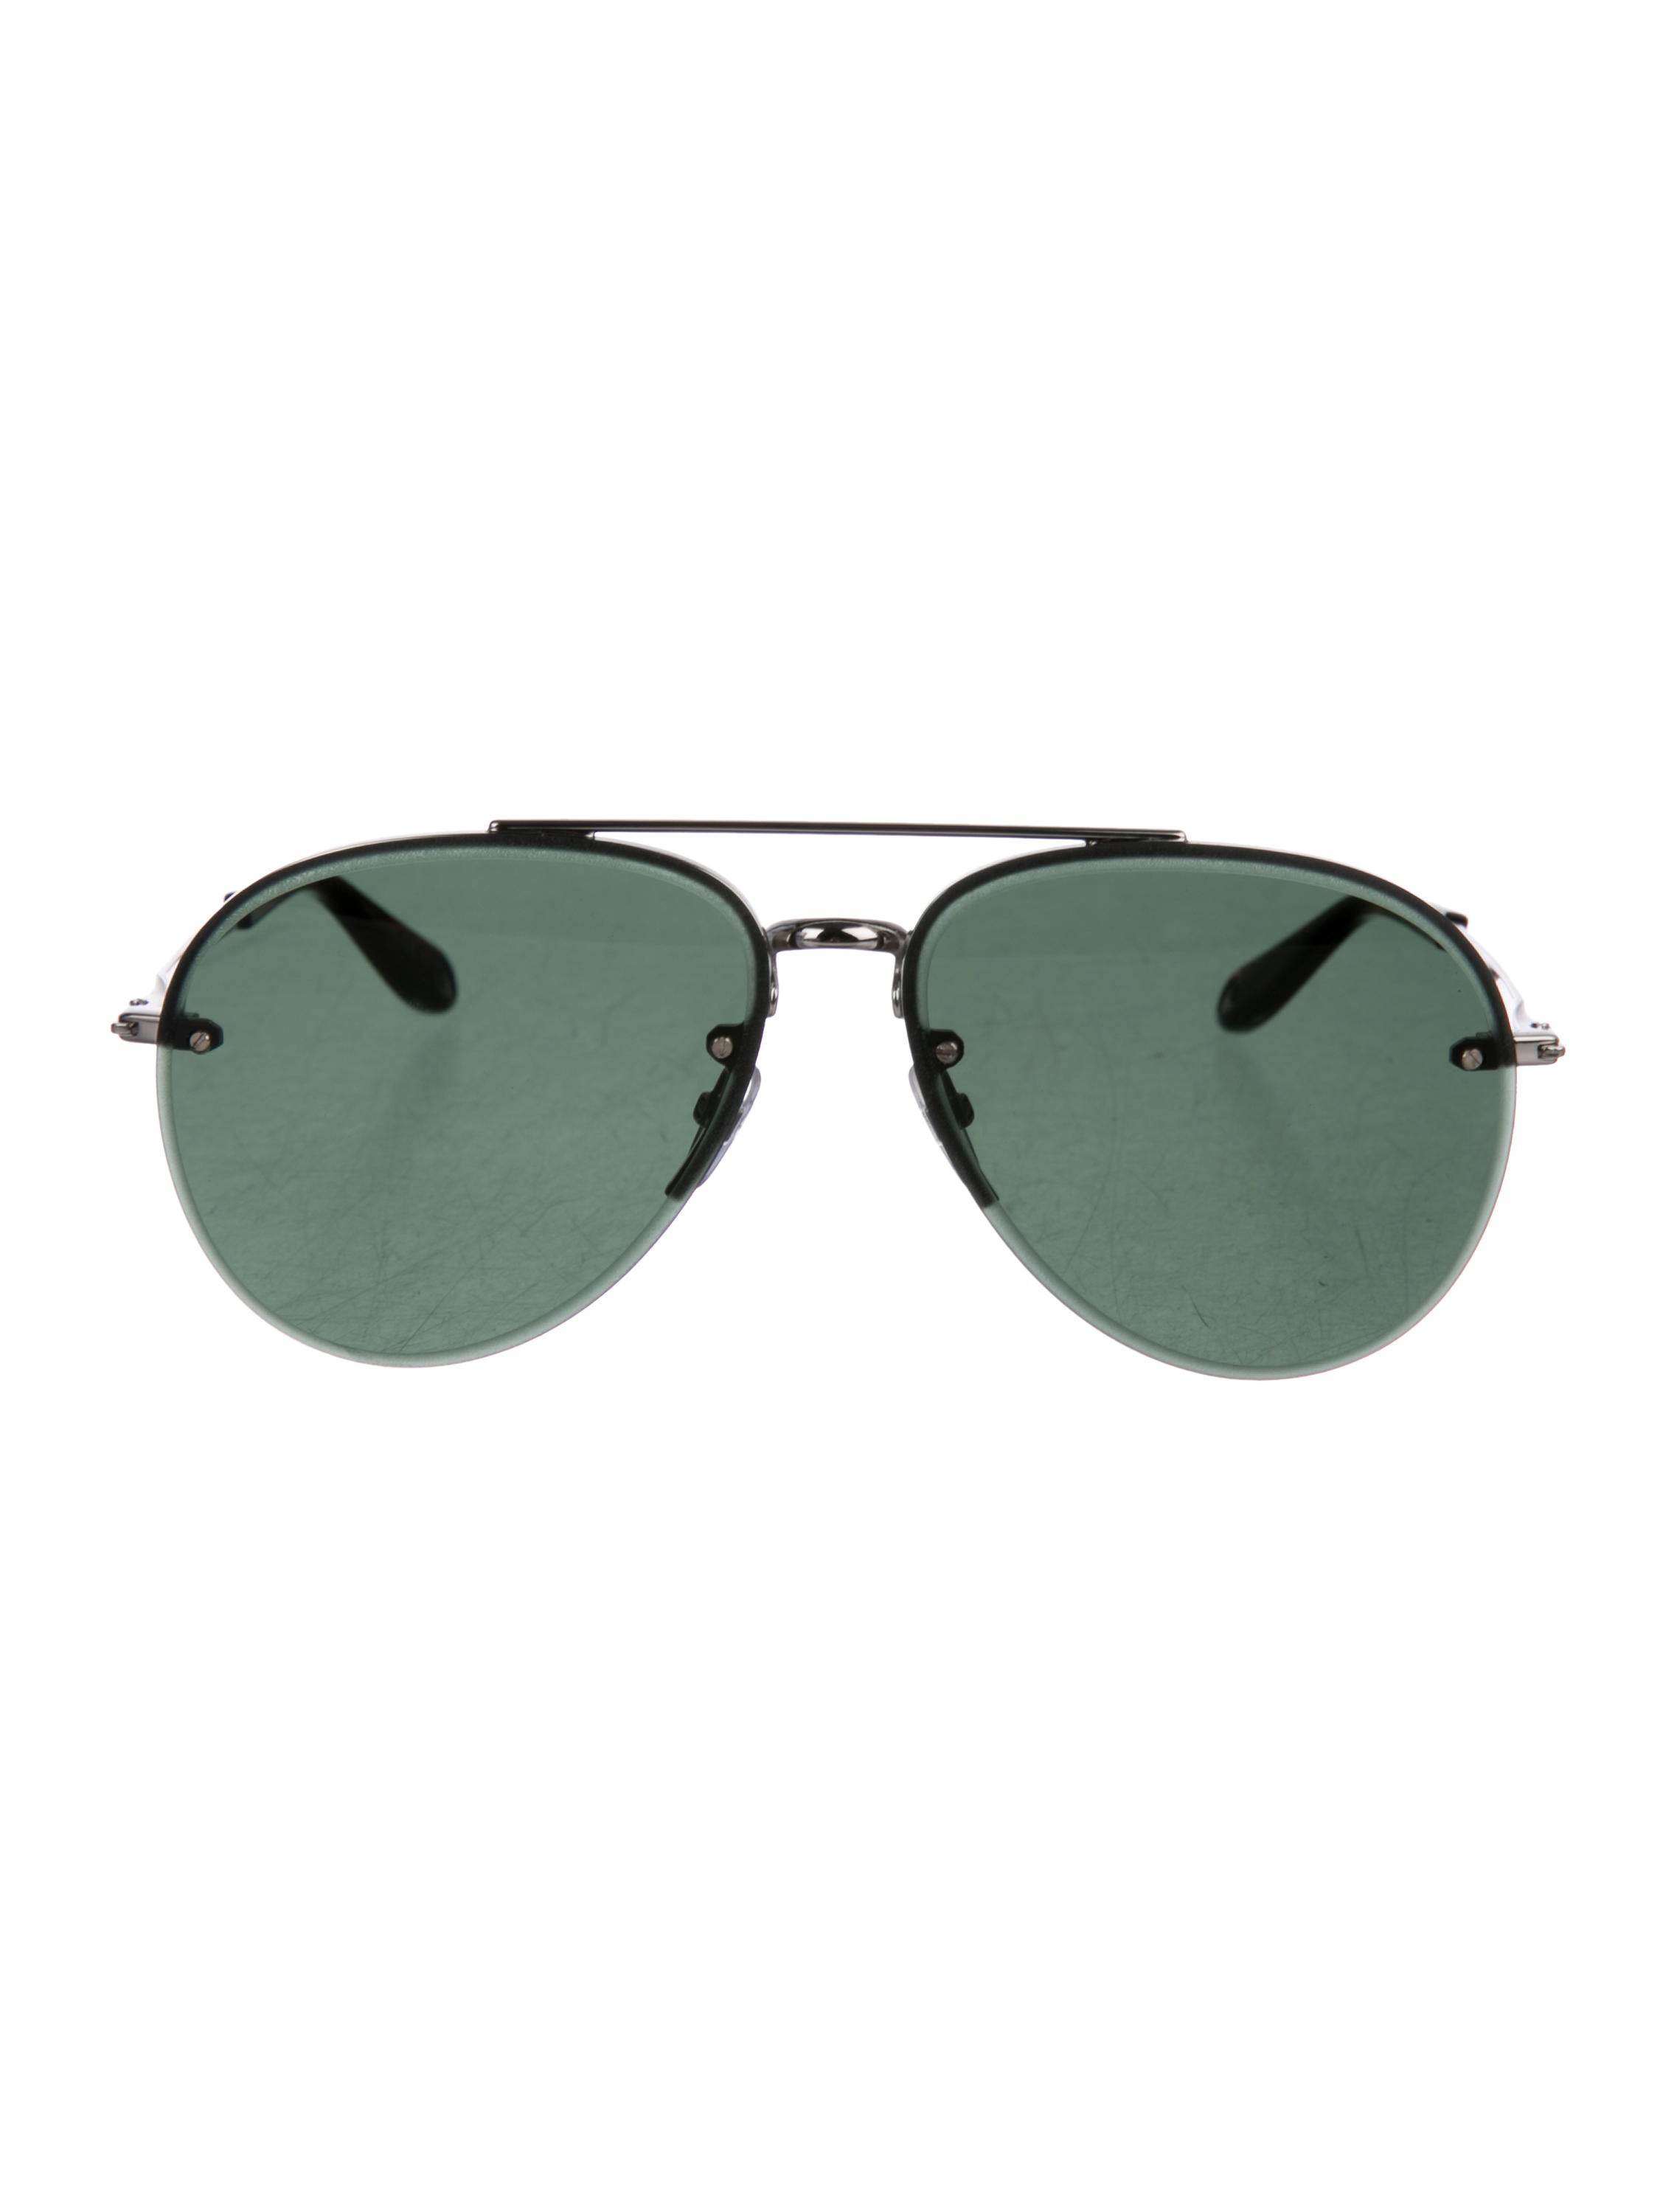 ed55016f005 Givenchy Metal Aviator Sunglasses - Accessories - GIV59087